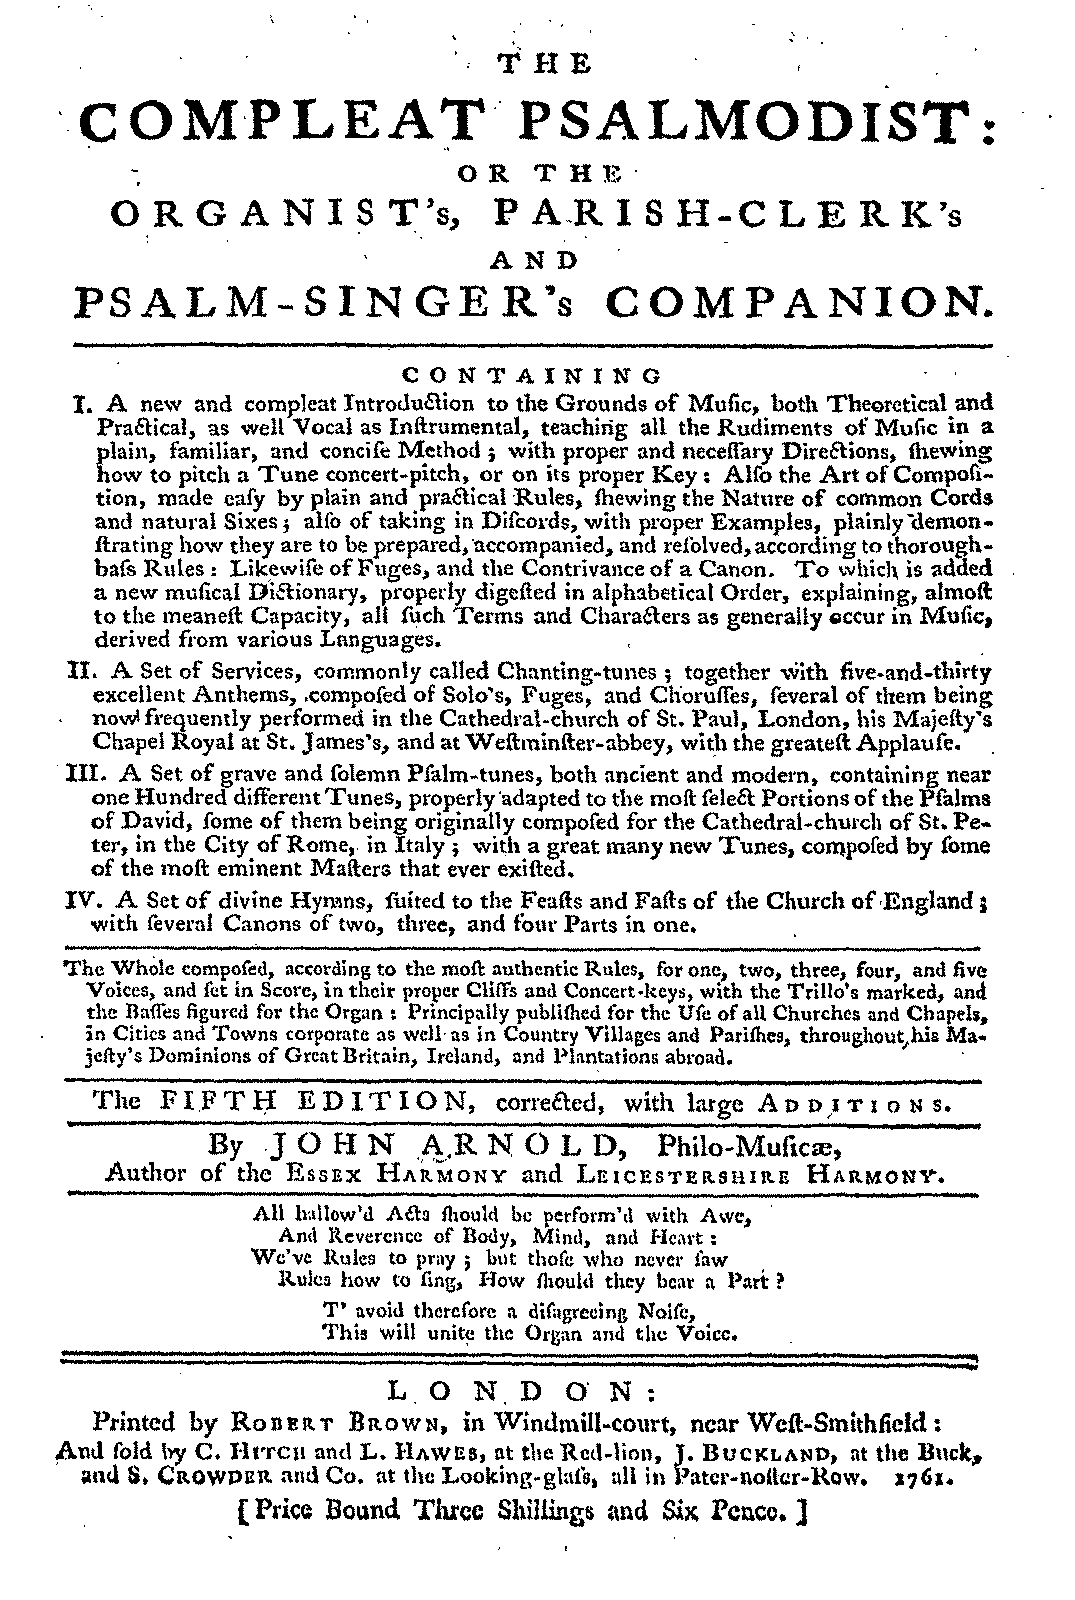 PMLP140450-Arnold - The Complete Psalmodist 1761 1.pdf